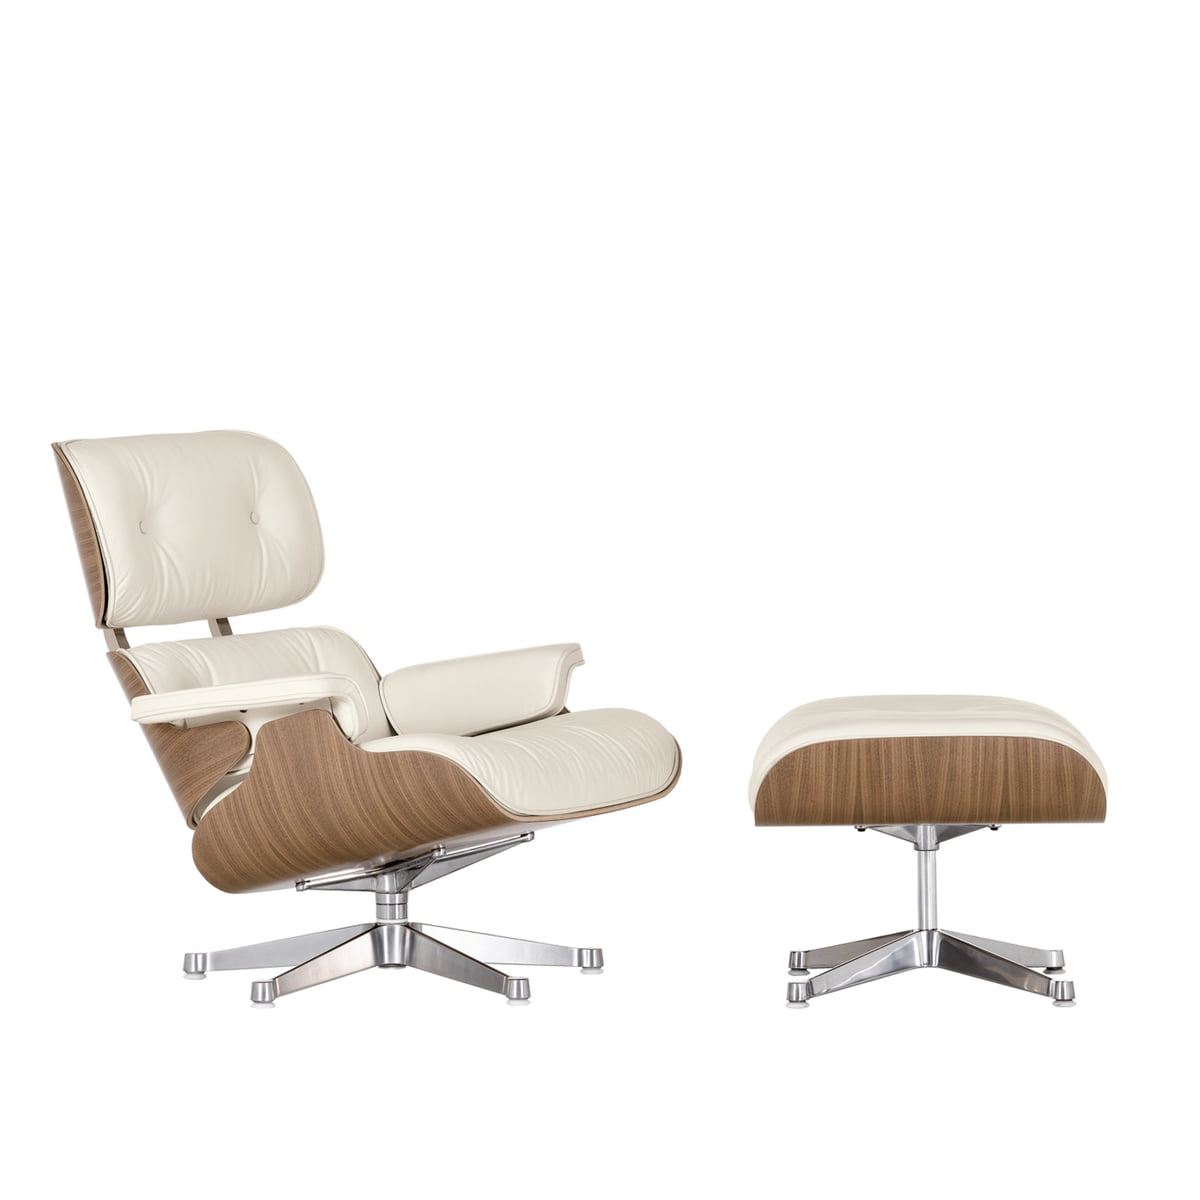 Vitra Eames Lounge Chair Amp Ottoman Walnut White